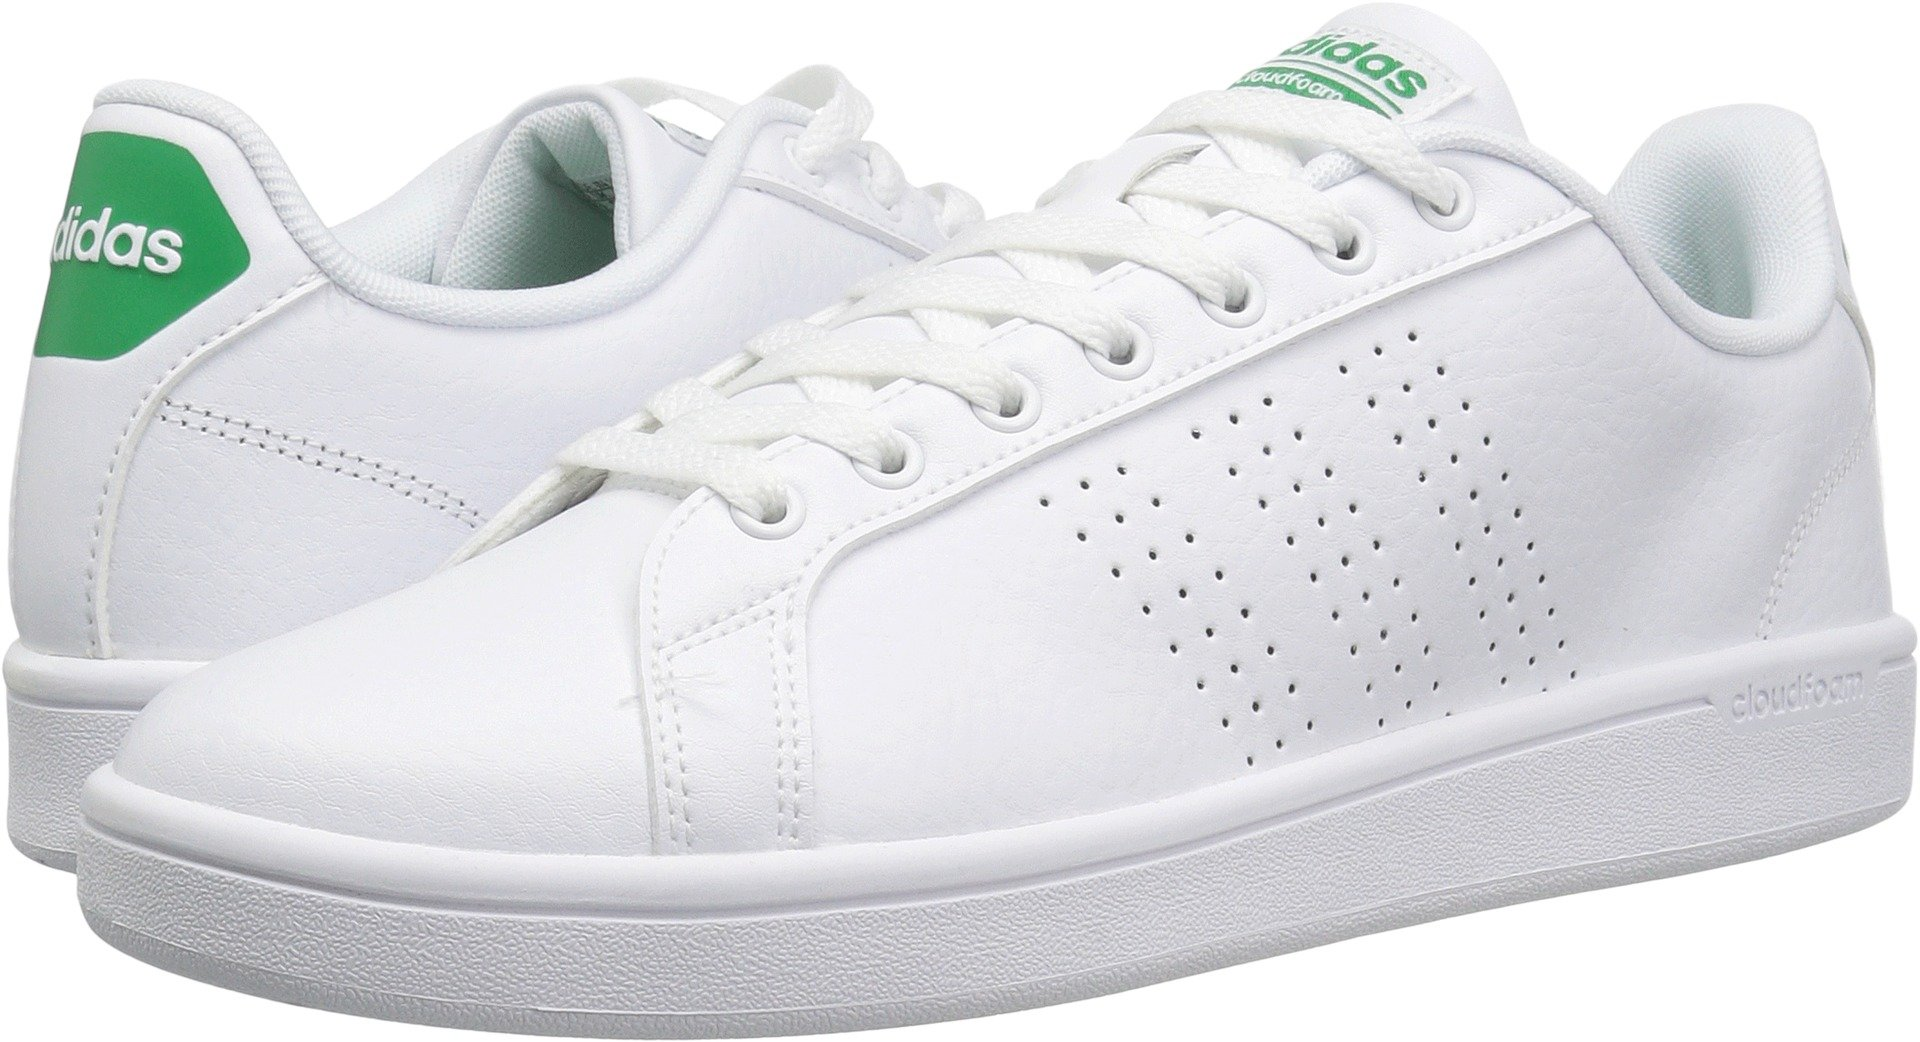 adidas Neo Men's Cloudfoam Advantage Clean Sneakers, White/White/Fairway, (9.5 M US) by adidas